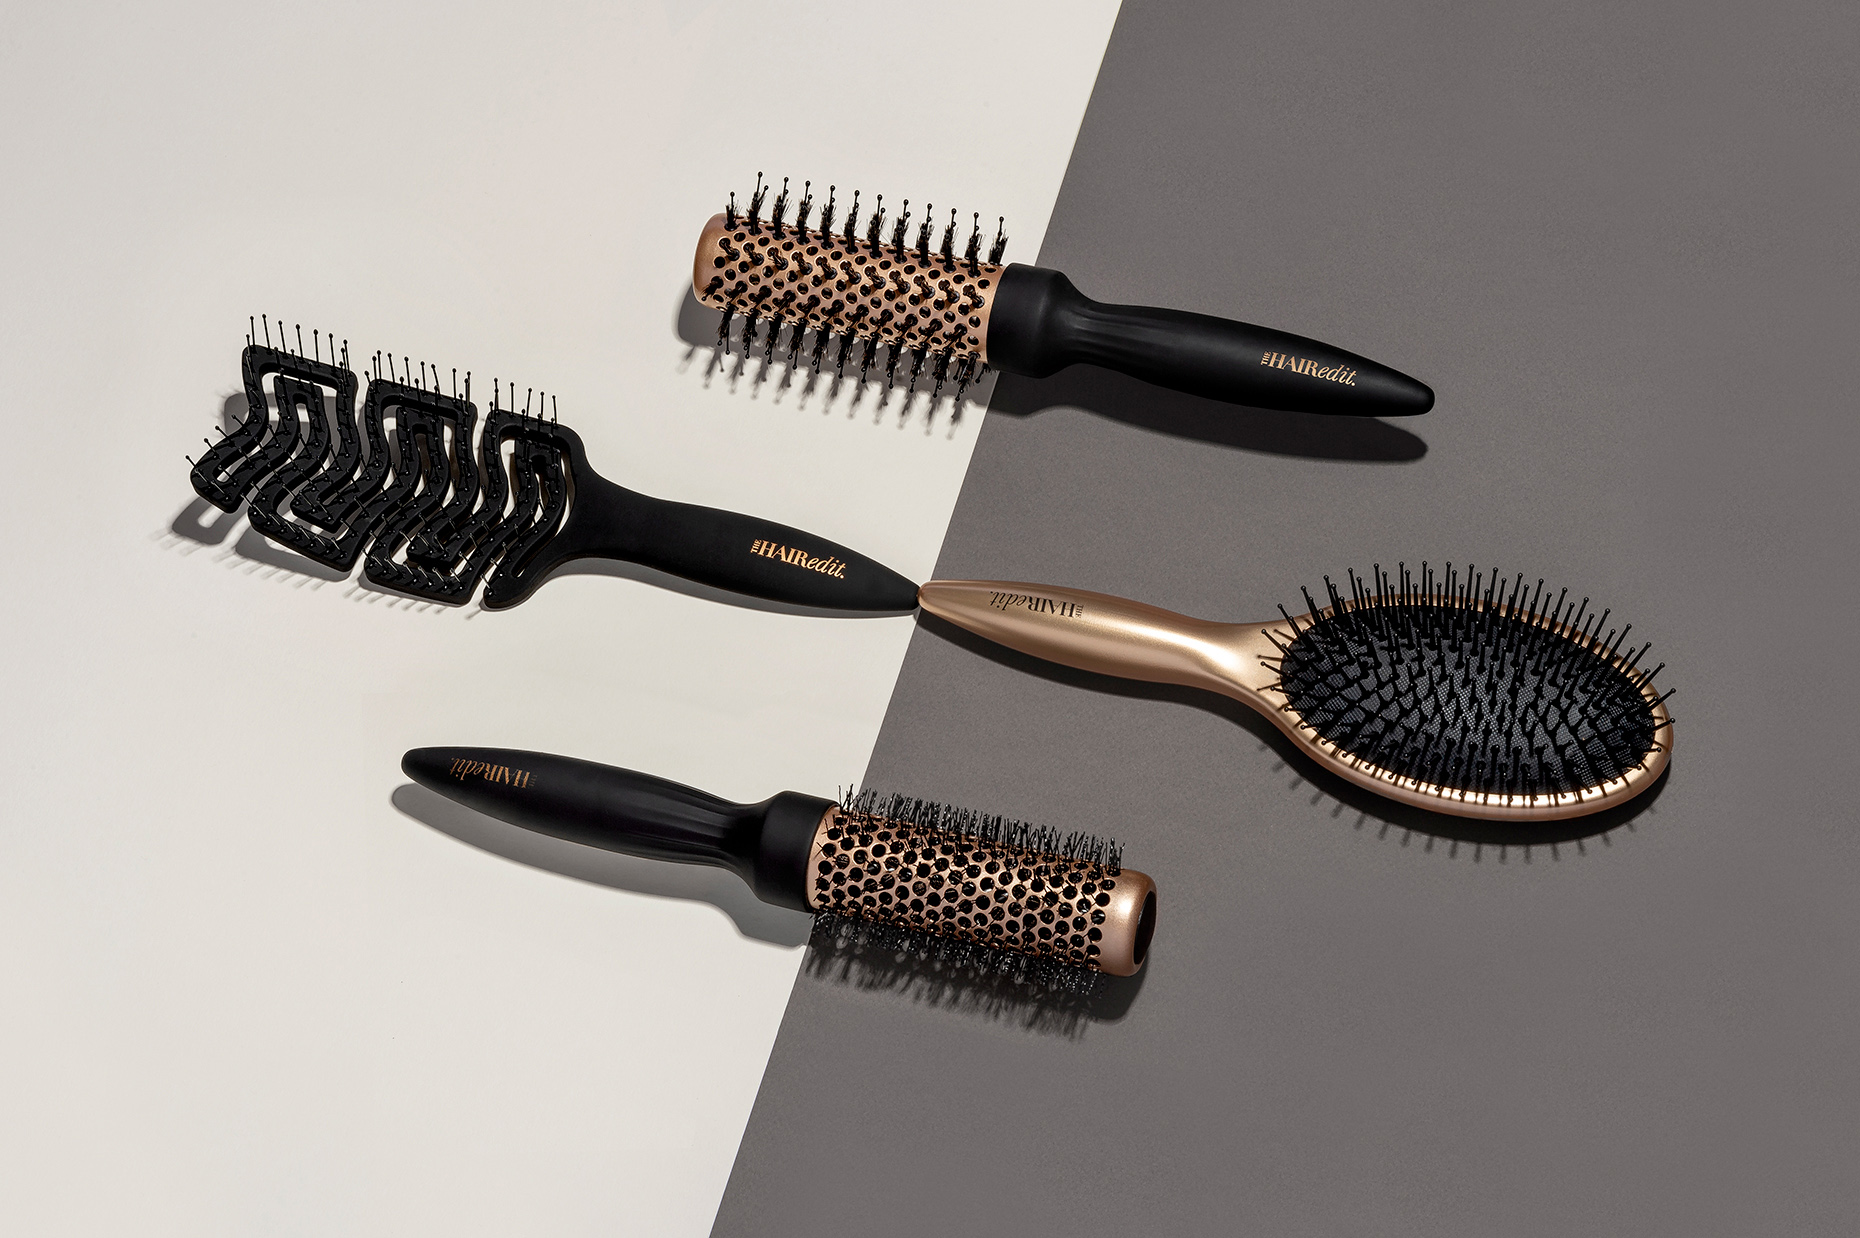 Fromm Hair brushes Pro Artistry Series Product photography